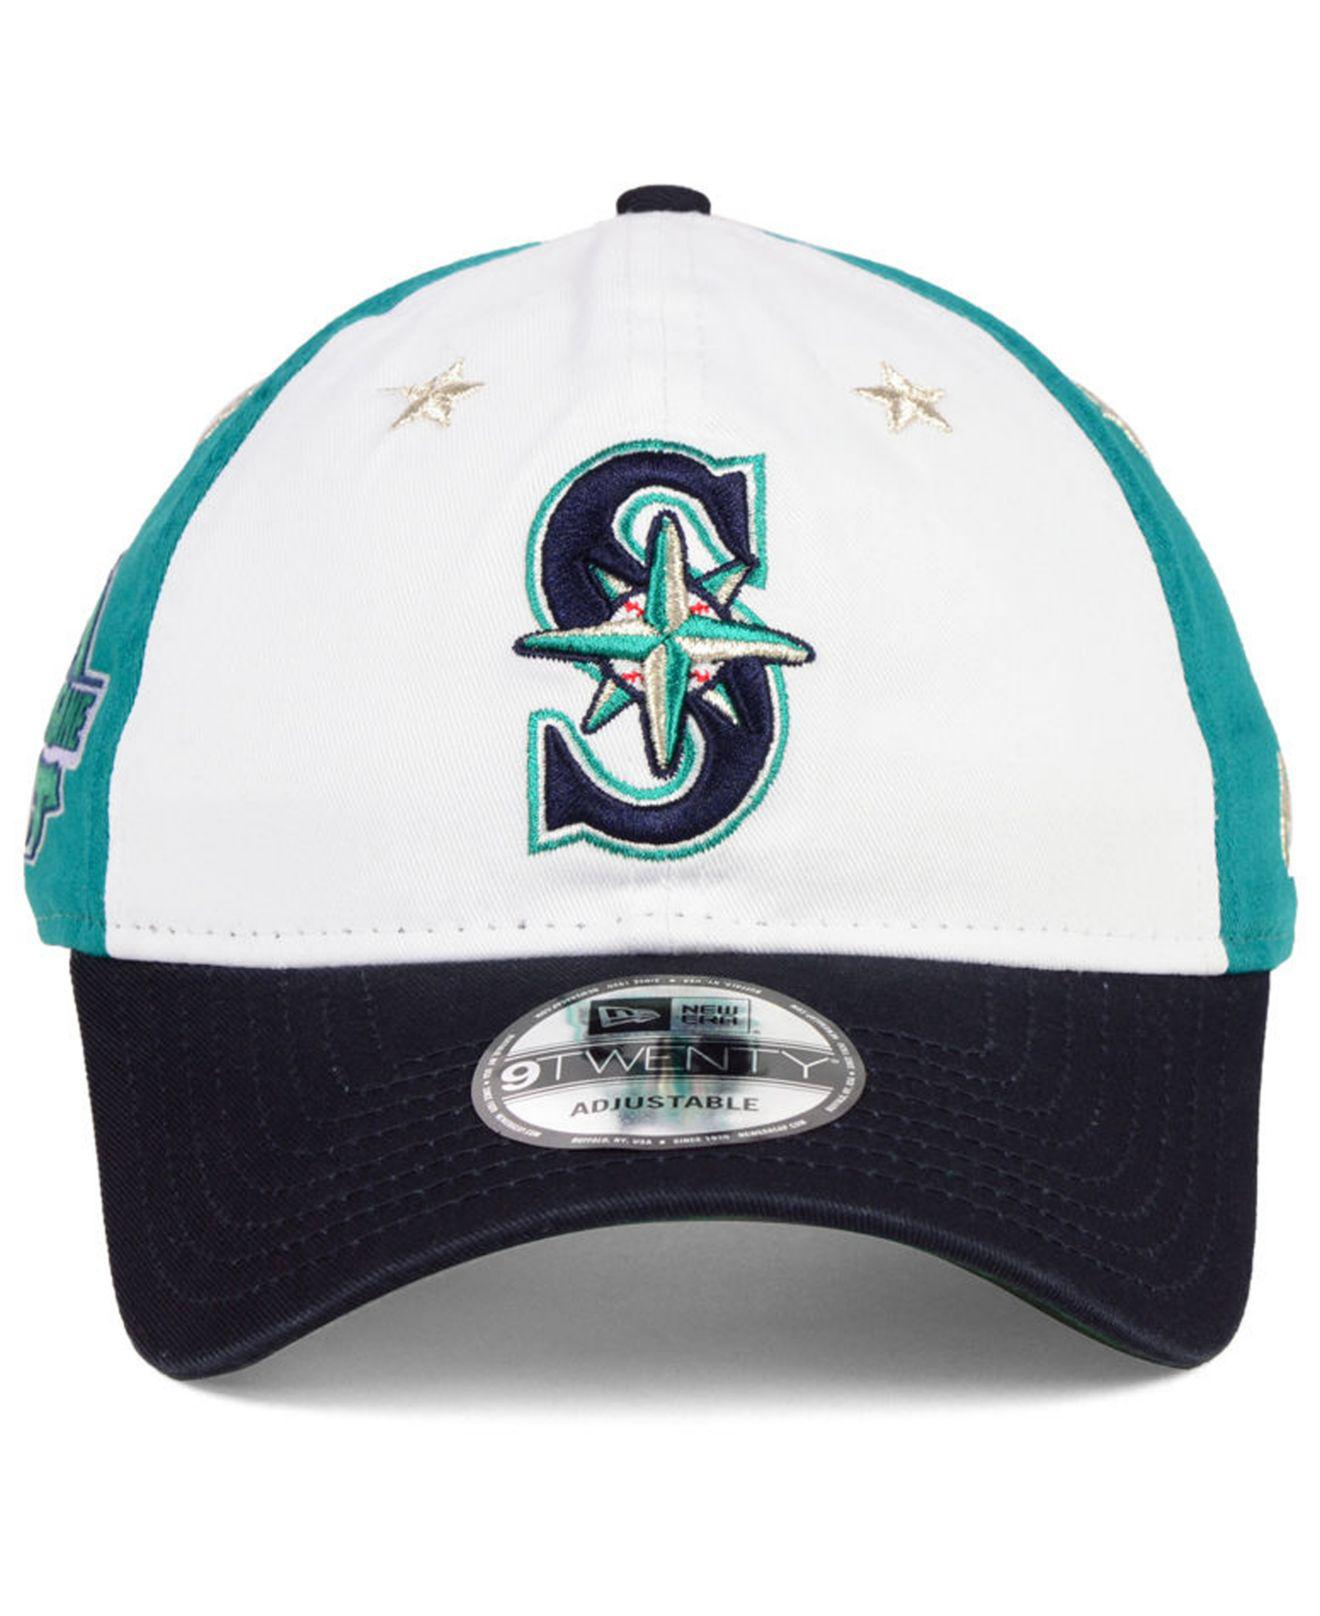 new product 80e59 6d272 ... italy lyst ktz seattle mariners all star game 9twenty strapback cap  2018 in blue for men